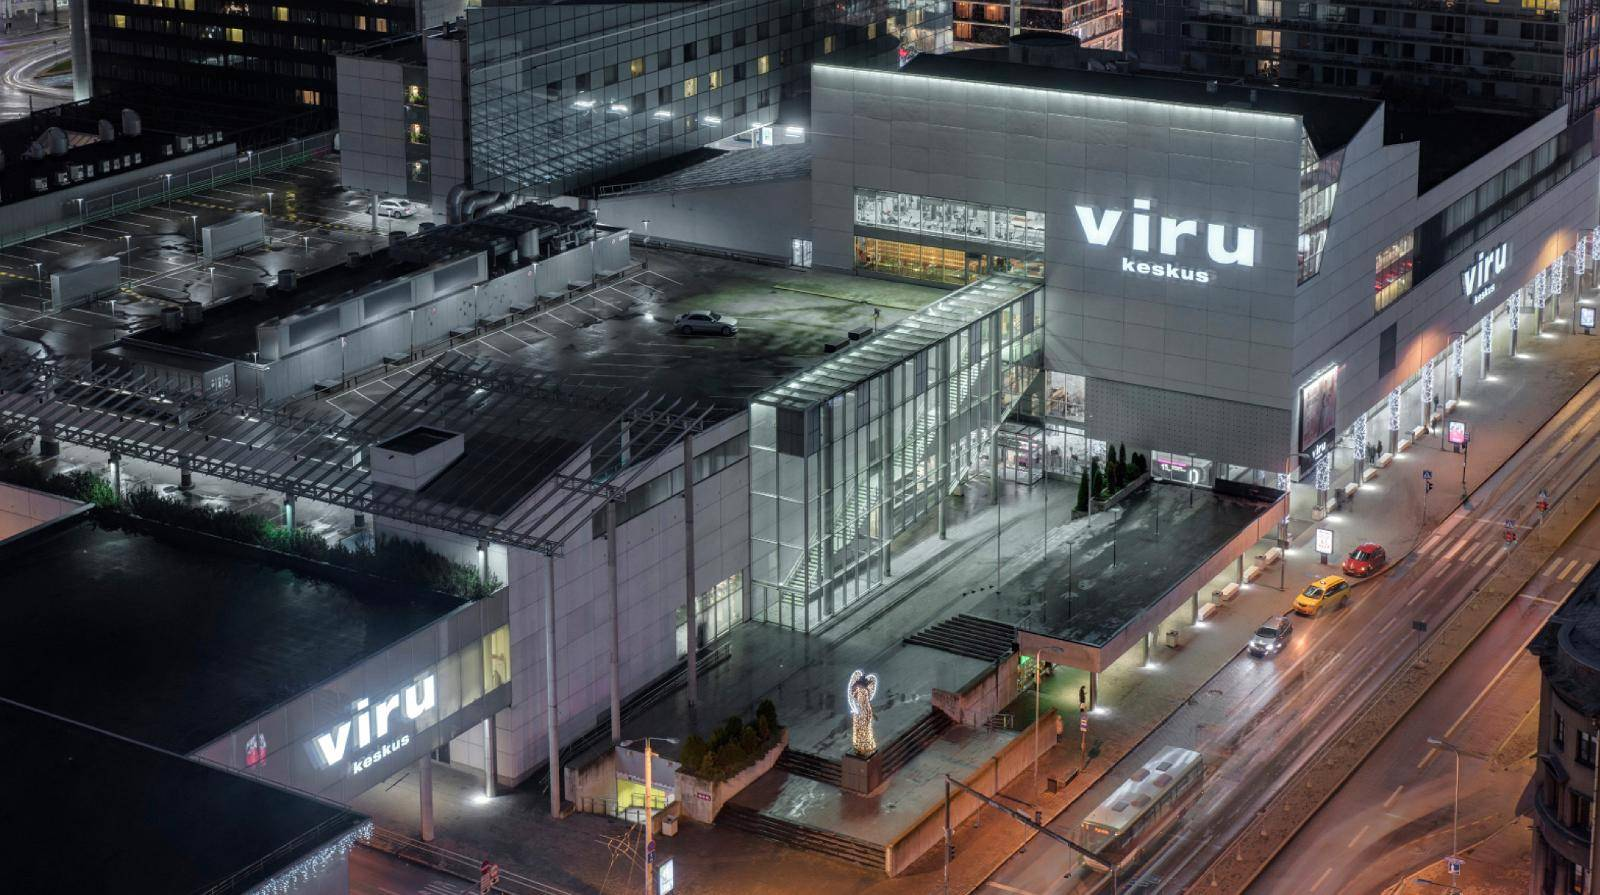 Viru Shopping Centre in Tallinn,Estonia